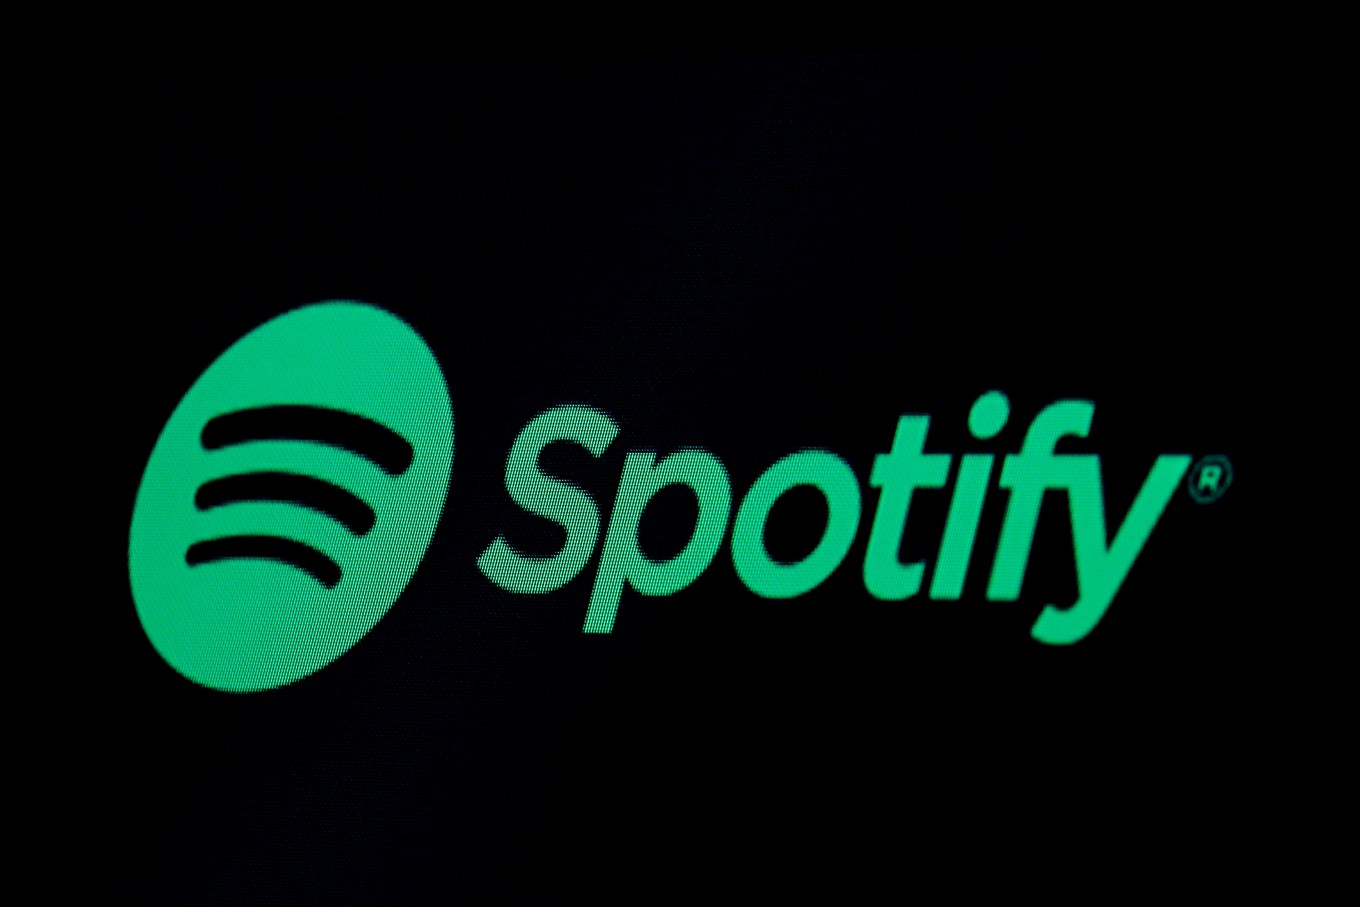 Spotify Lite app reduces data usage, takes up less storage space